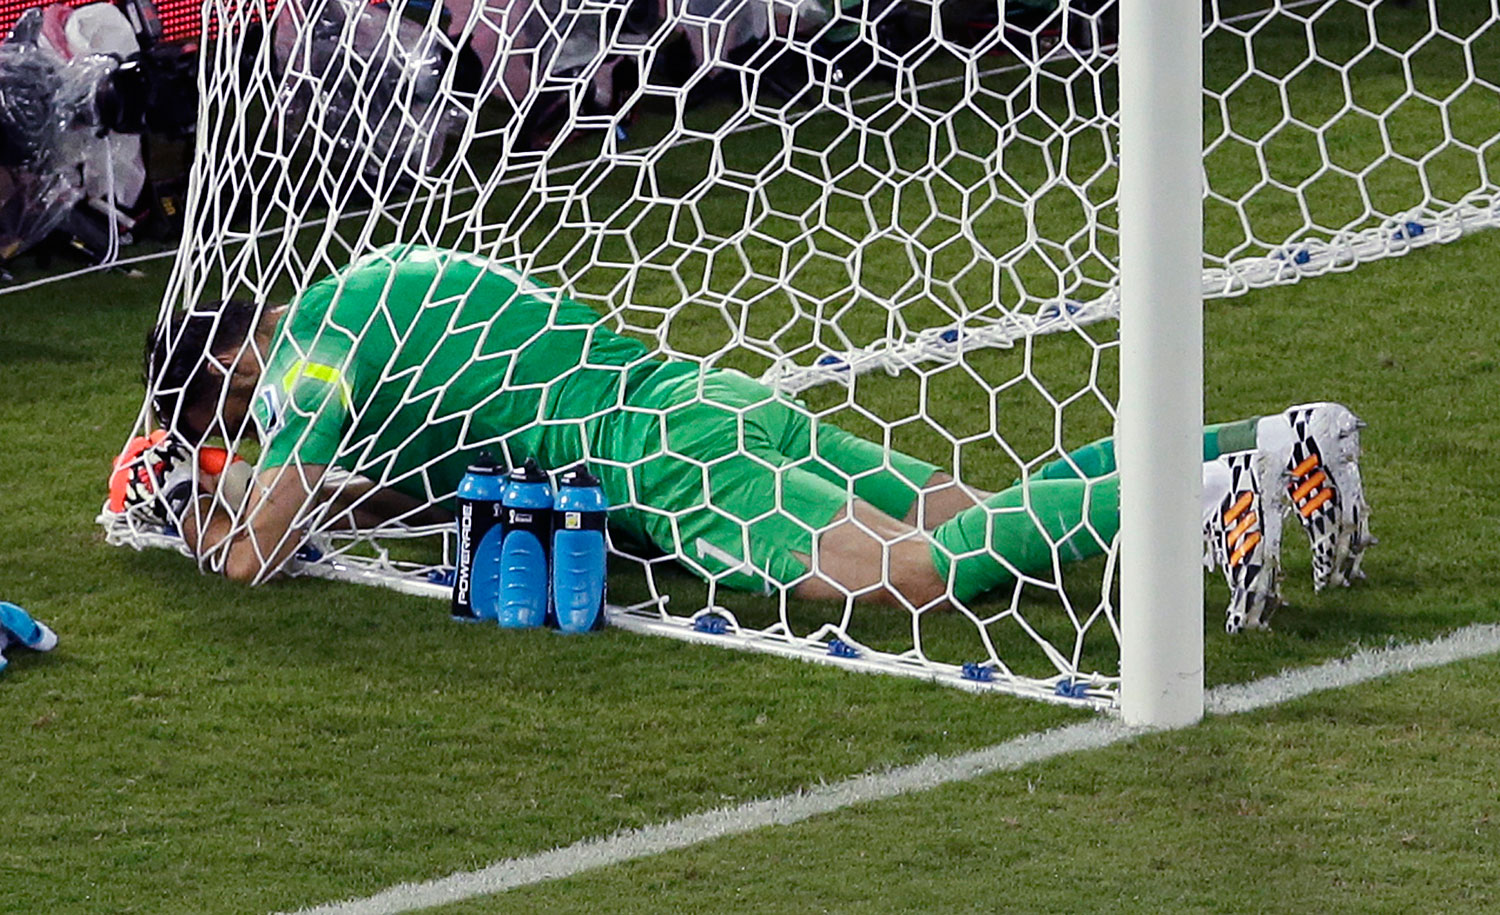 Greece's goalkeeper Orestis Karnezis sits in the net during the group C World Cup soccer match between Japan and Greece at the Arena das Dunas in Natal, Brazil on June 19, 2014.